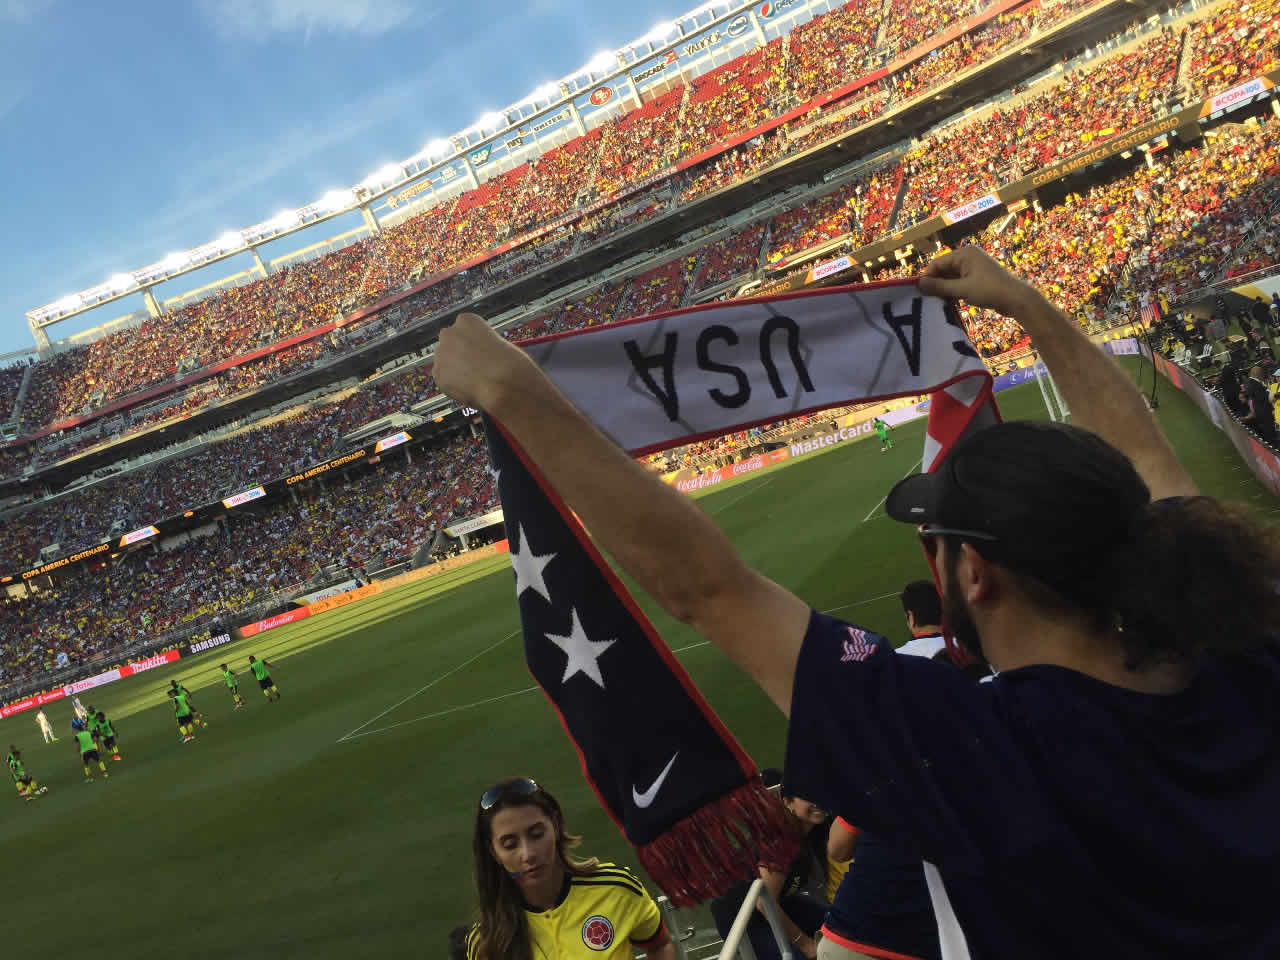 <div class='meta'><div class='origin-logo' data-origin='none'></div><span class='caption-text' data-credit='KGO-TV'>U.S.A. vs. Colombia at Levi's Stadium on Friday, June 3, 2016. We want to see your fan pride, so tag your photos #ABC7Now and we may feature them here or on TV.</span></div>